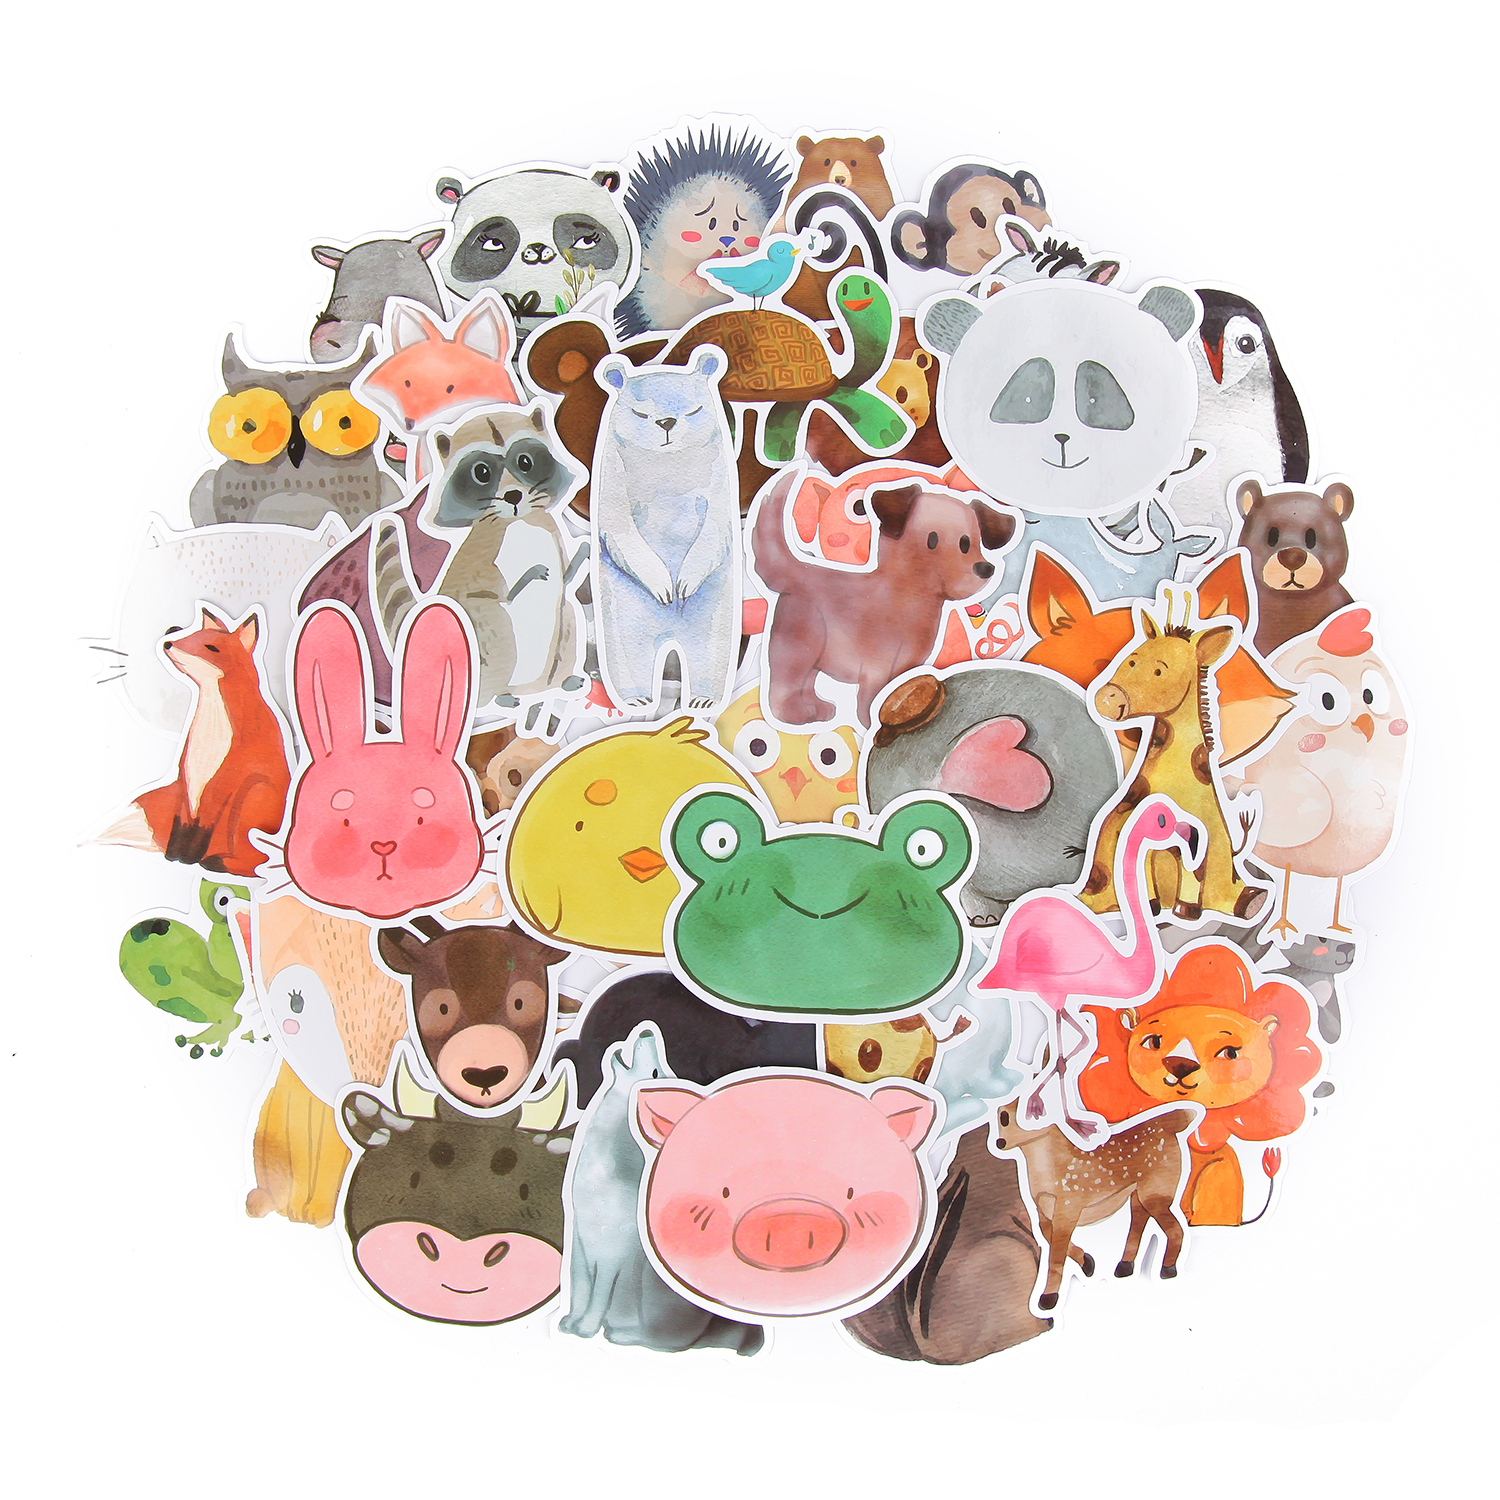 TD ZW 50pcs/lot Waterproof Super Cute Cartoon Animal Stickers For Car Laptop Phone Pad Bicycle Decal Kids Gift Cat Pig Dog